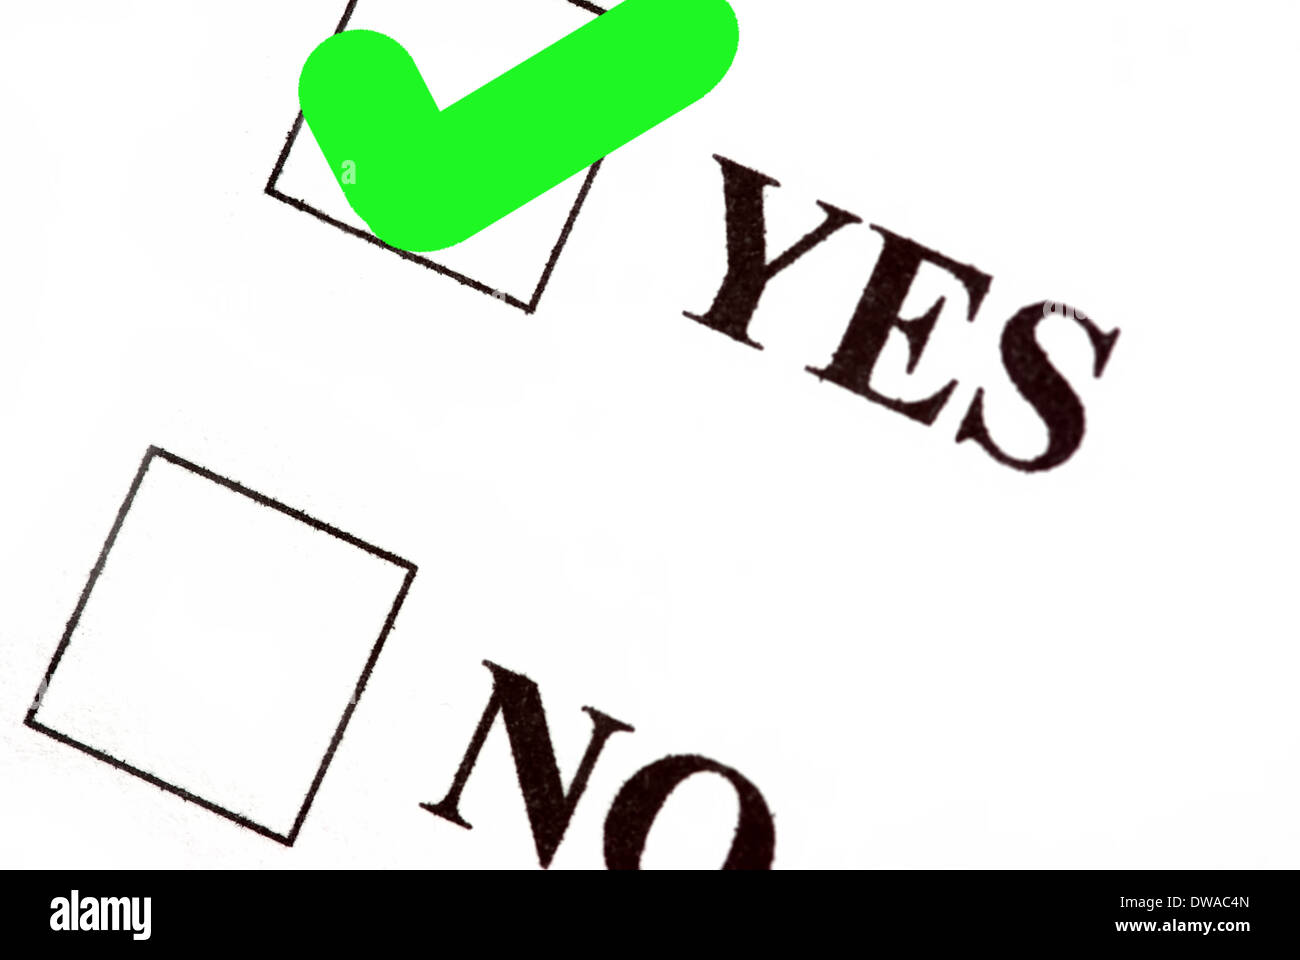 Yes and no boxes, yes voted. Stock Photo